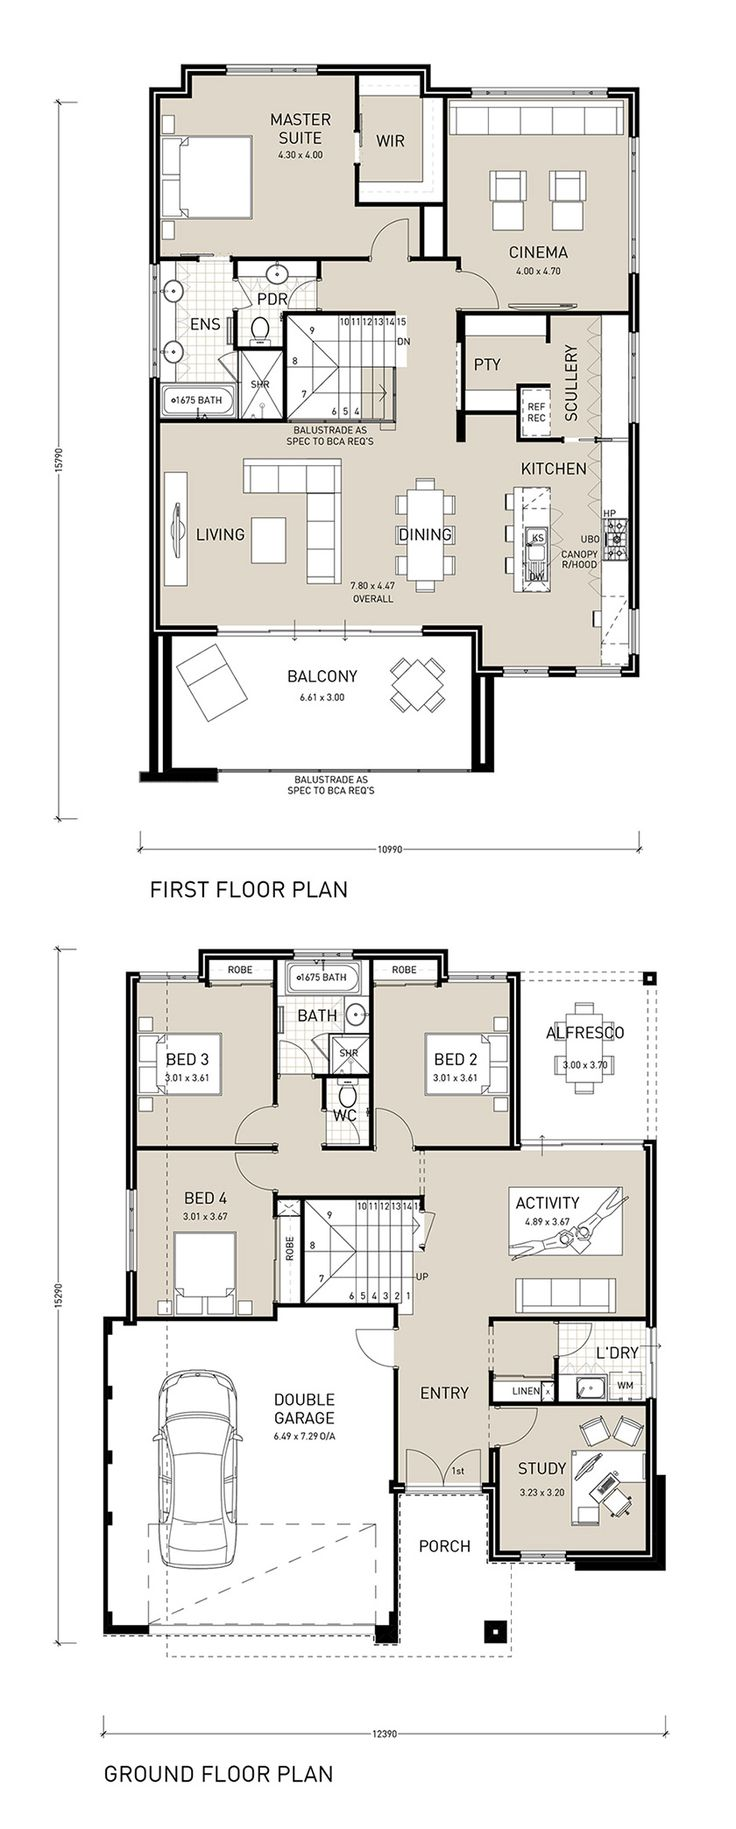 43 best reverse living house plans images on pinterest for Reverse living house plans